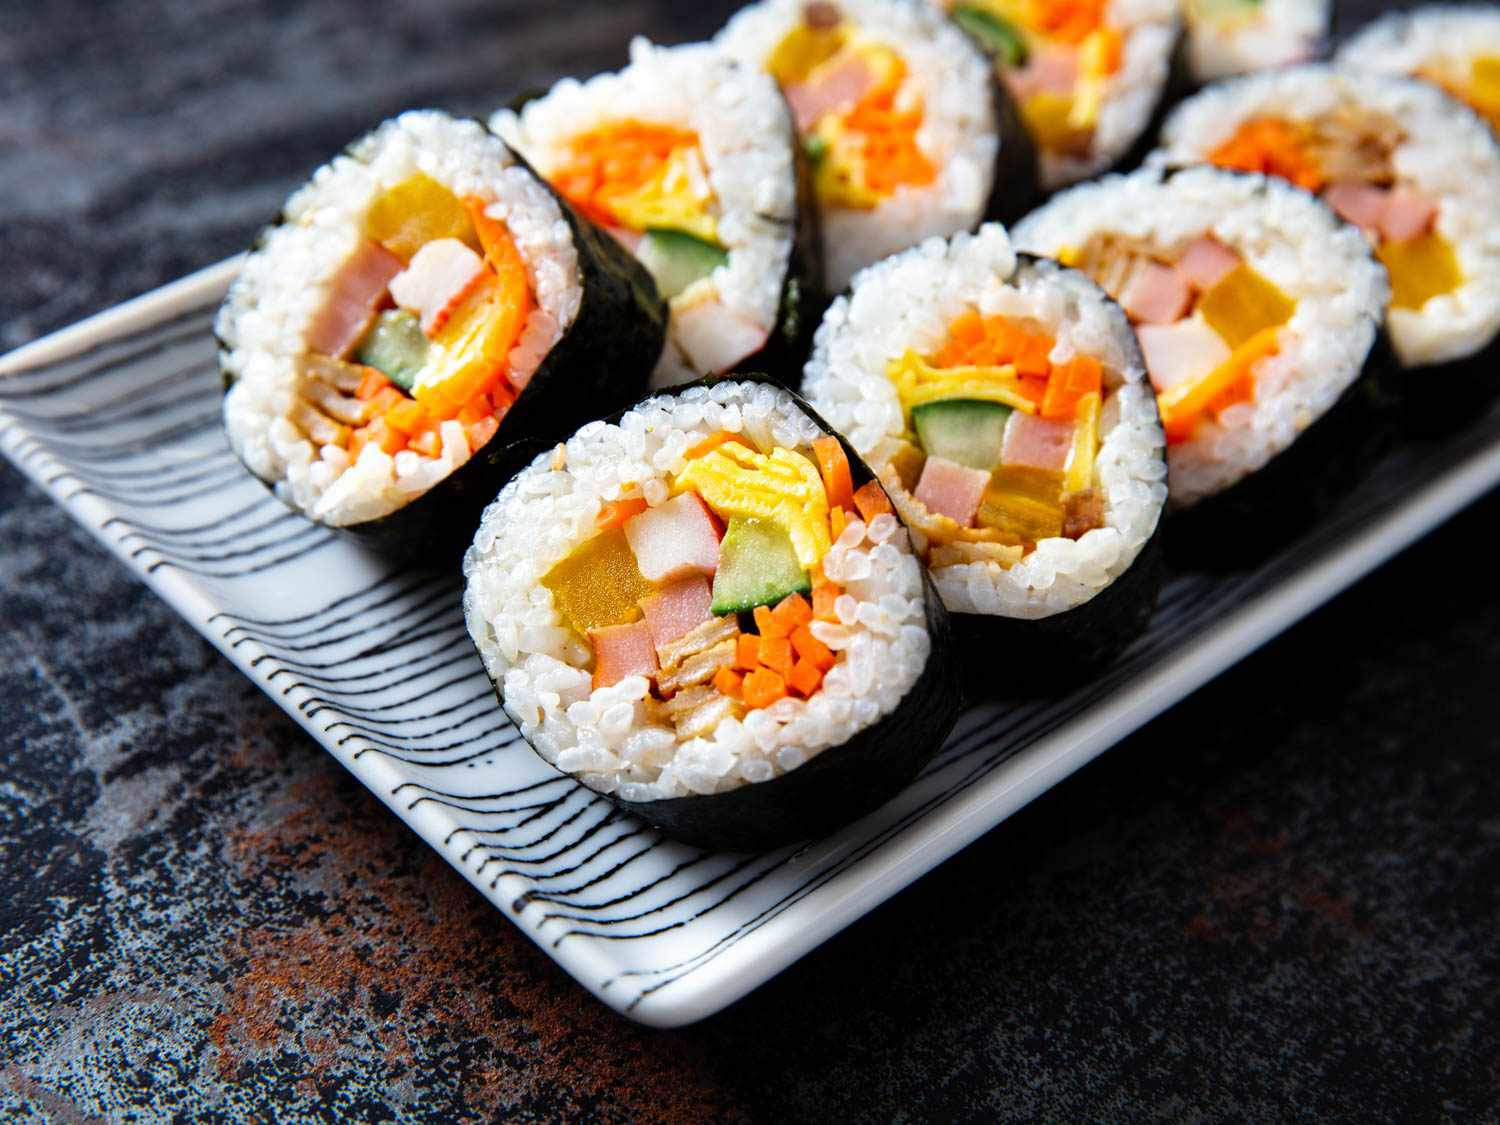 A close up of a small plate of gimbap loaded on it: the rolls look very full of multiple colorful ingredients including bright yellow egg, green cucumber, orange carrot, and more